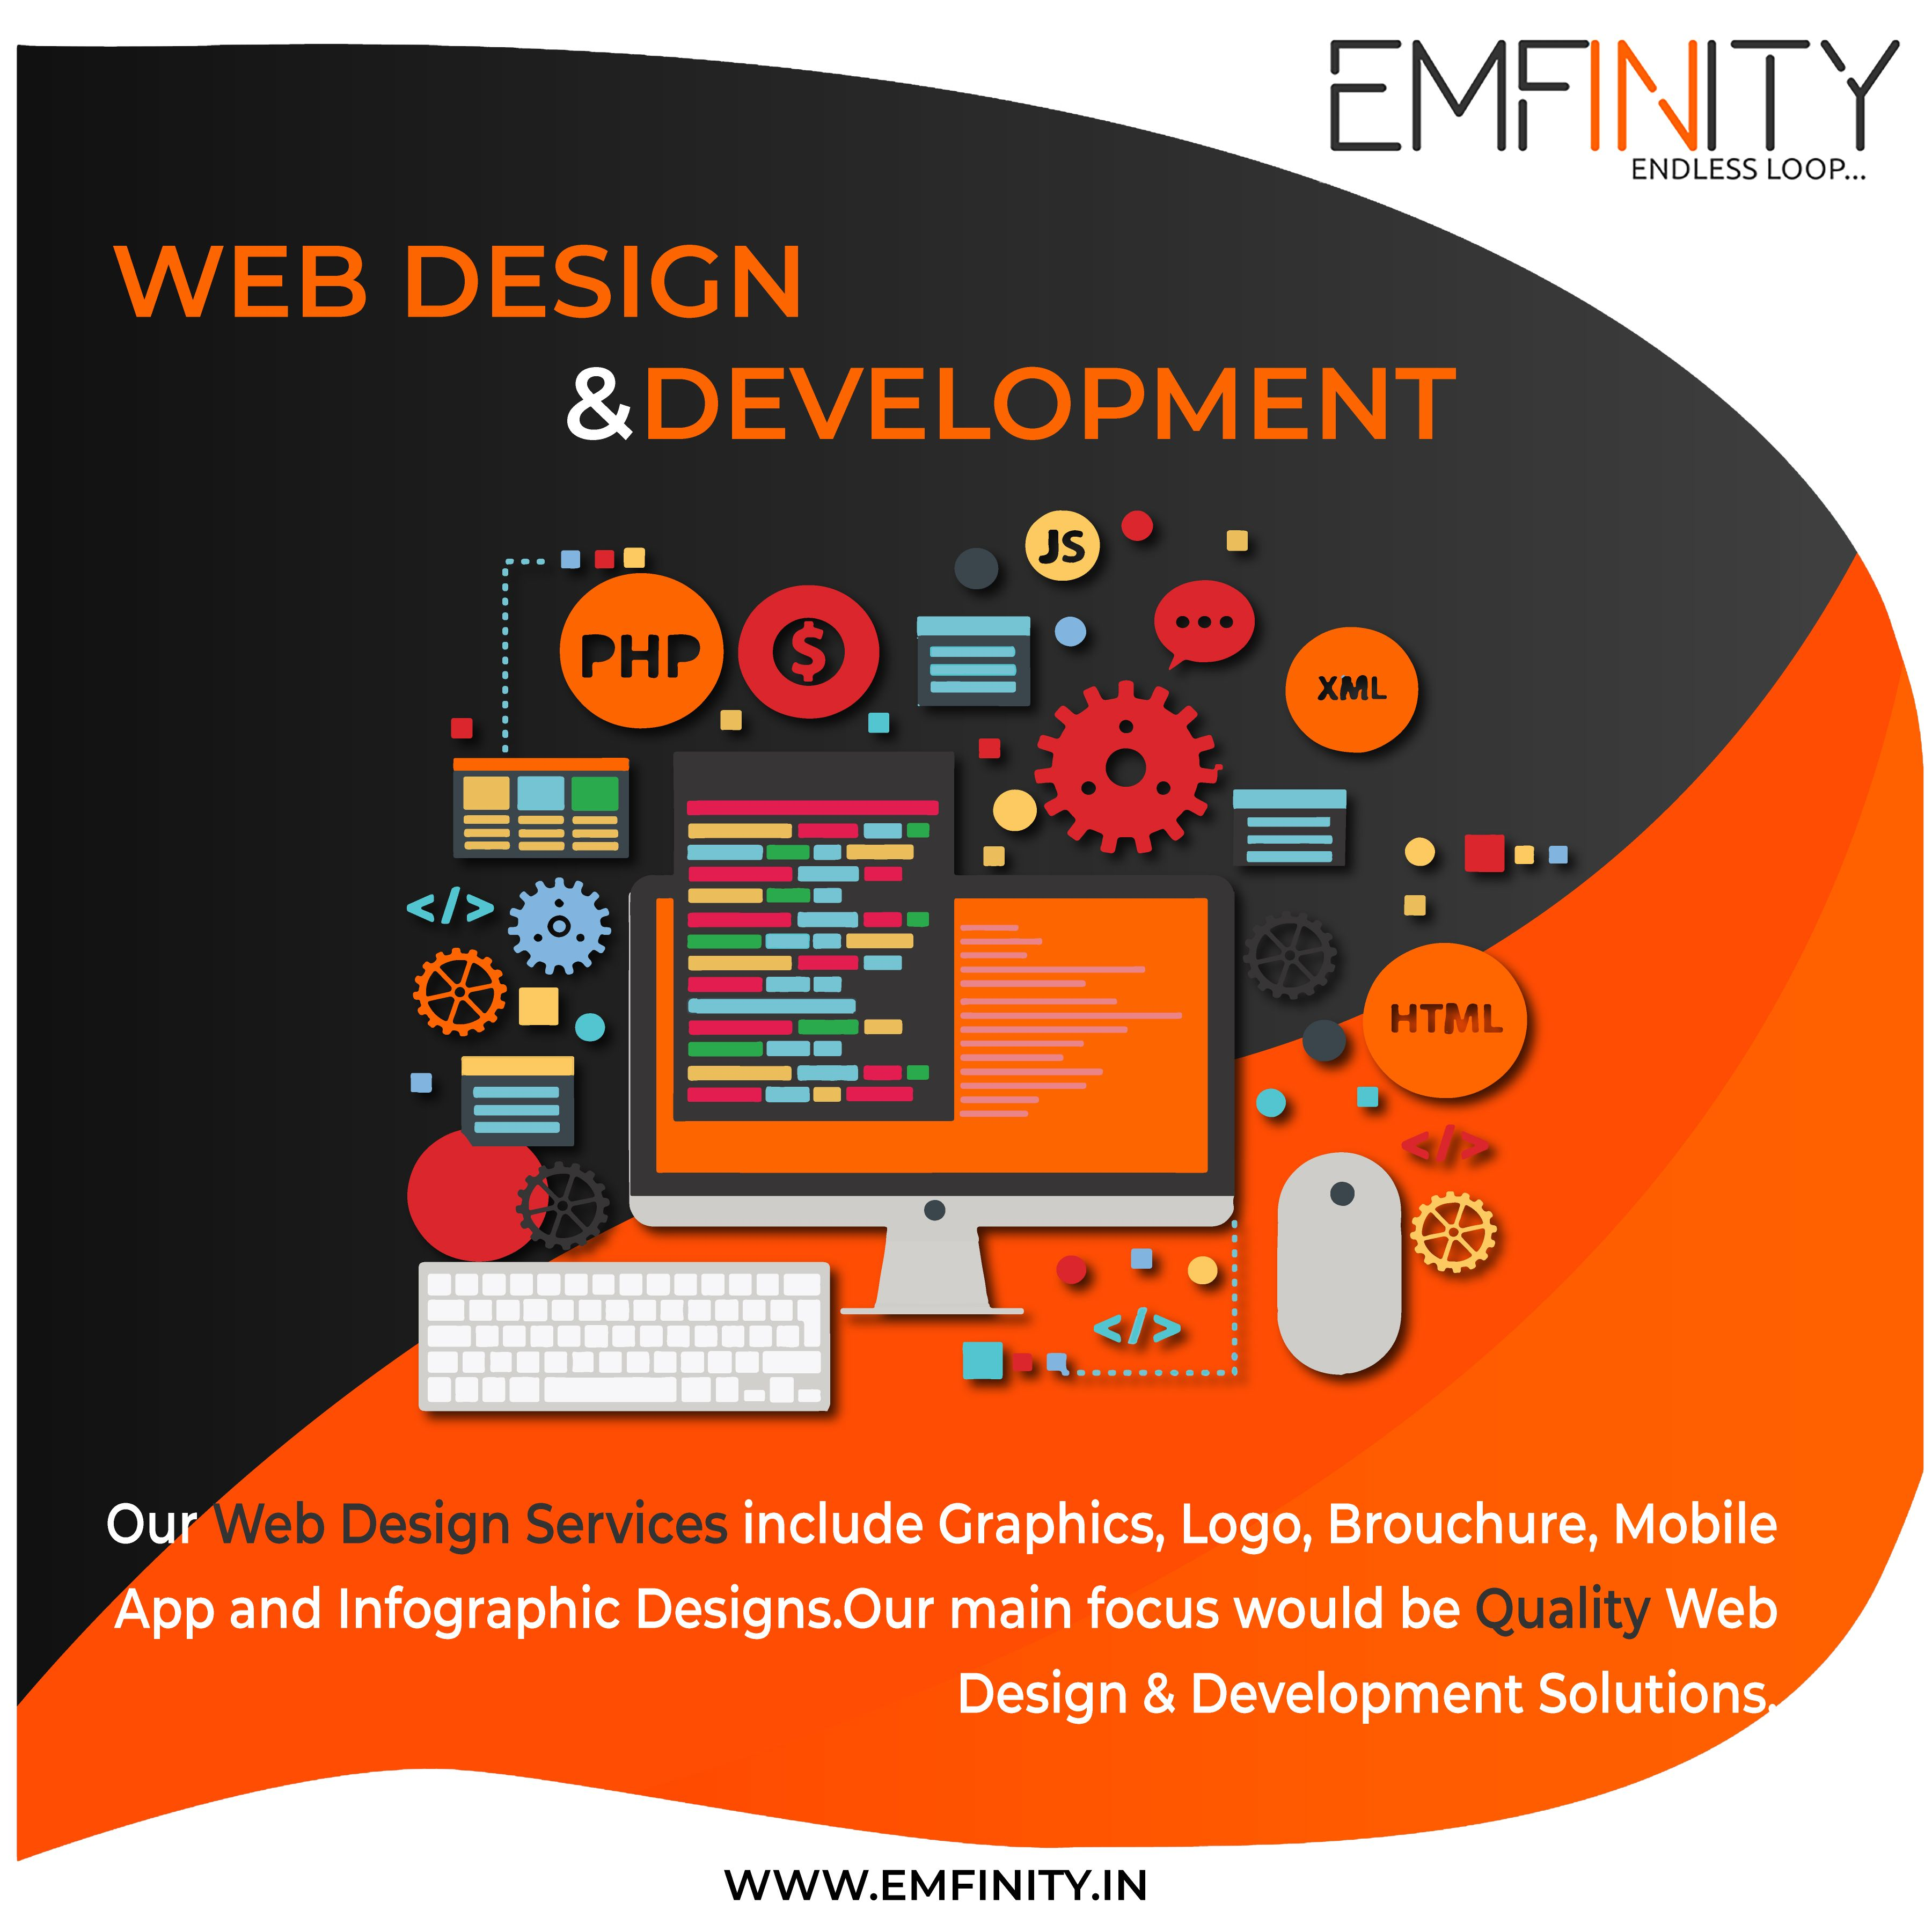 Emfinity It Solutions Is An Online Leading Web Design Web Development Digital Marketing Mobile App Deve Web Development Design Design Development Web Design